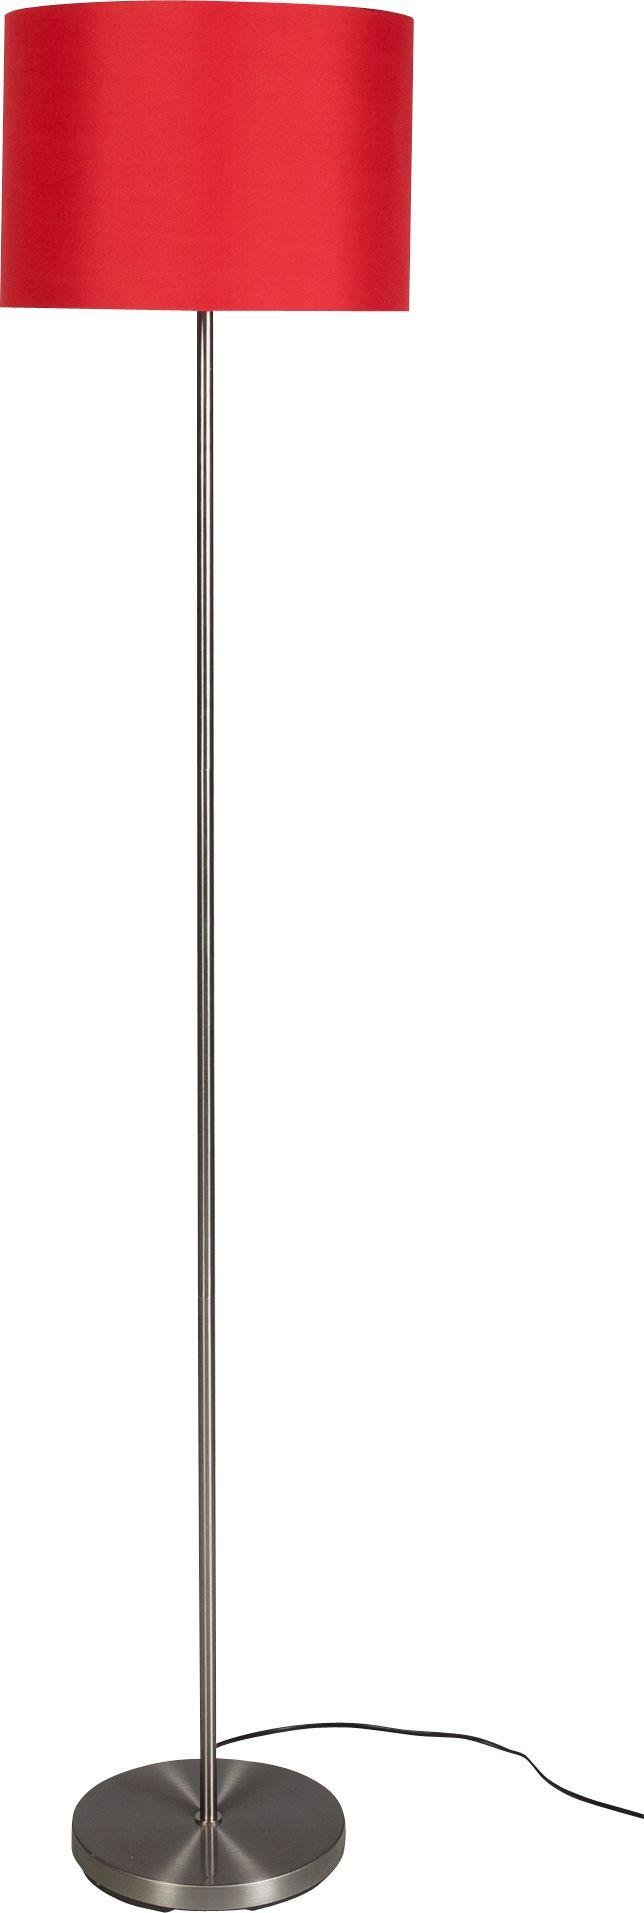 ColourMatch Satin Stick Floor Lamp - Poppy Red